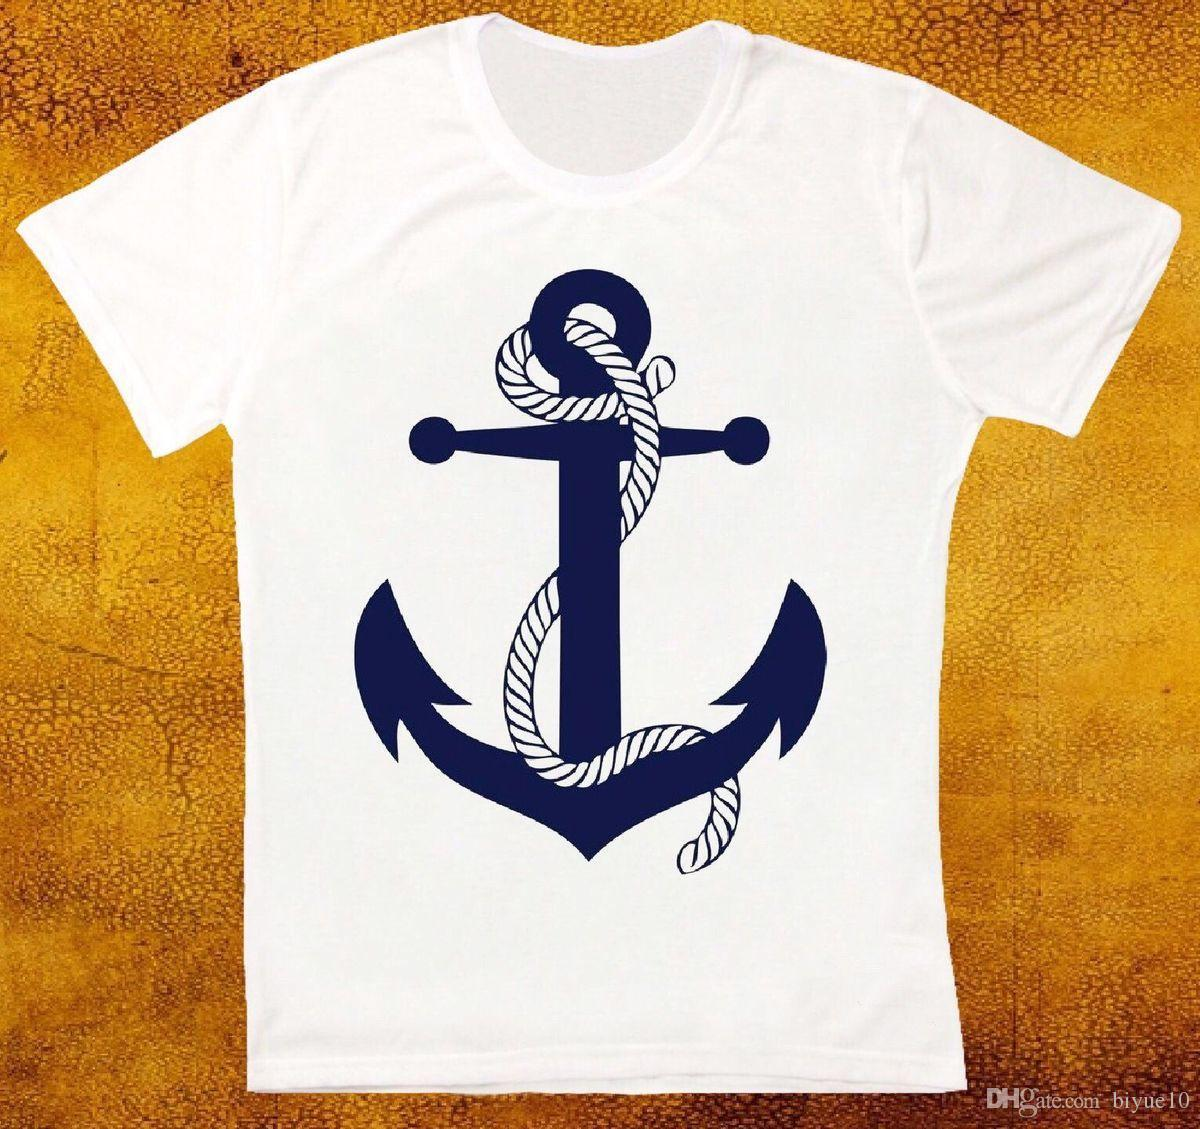 4c56d37d NAVY SAILOR ANCHOR RETRO VINTAGE HIPSTER UNISEX T SHIRT Casual Plus Size T  Shirts Hip Hop Style Tops Tee S 3Xl Plus Size Go T Shirts Really Funny  Shirts ...